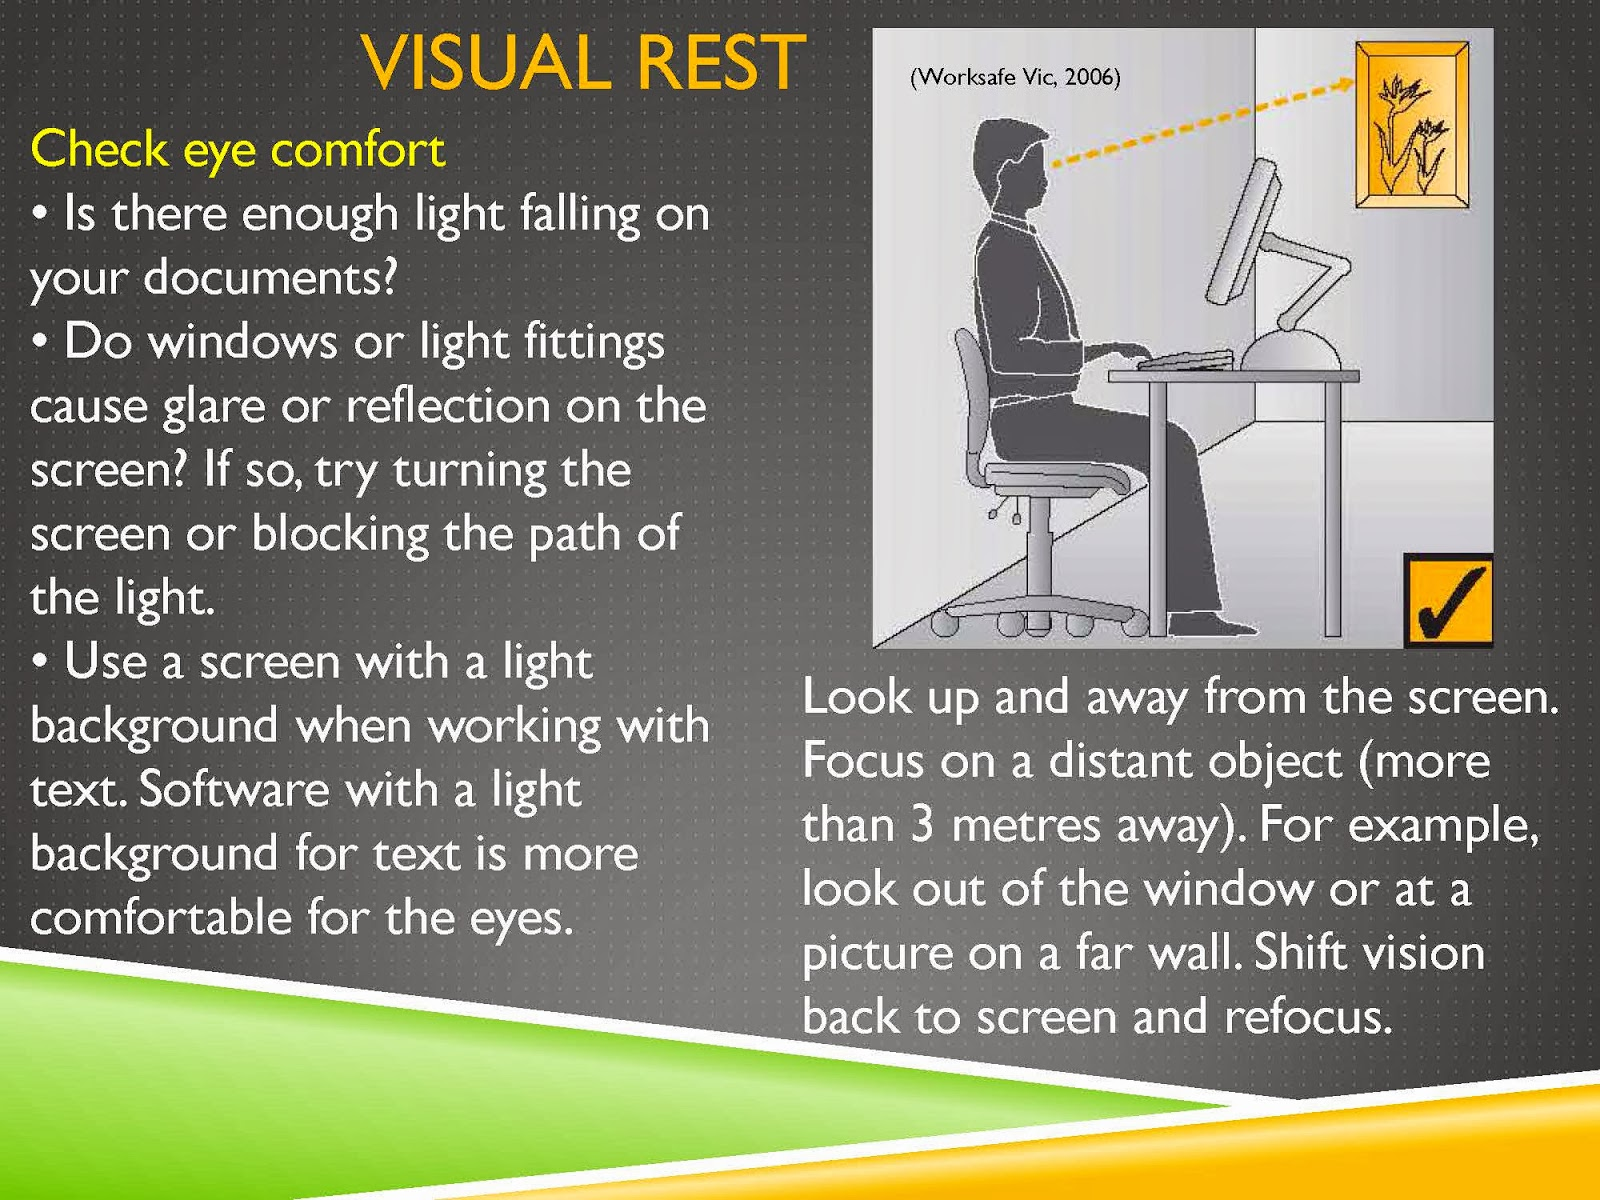 VISUAL REST